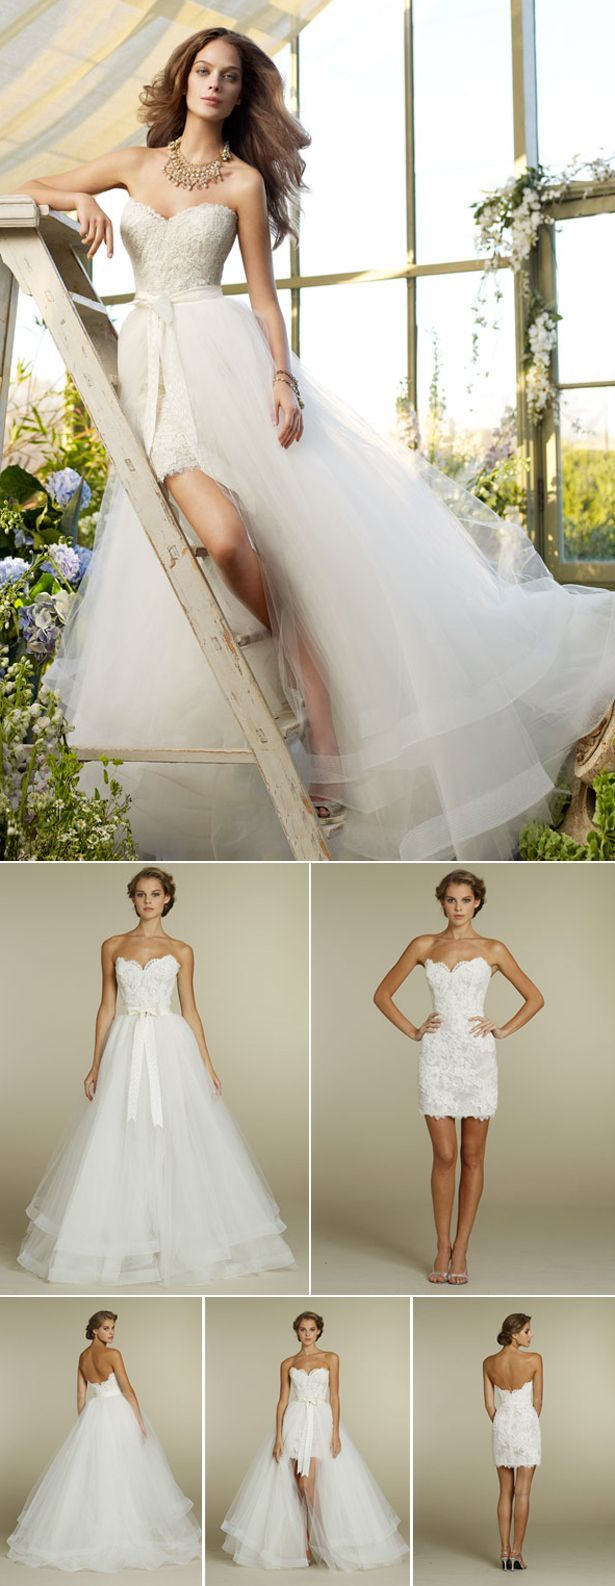 Stunning Convertible Two in One Wedding Dresses